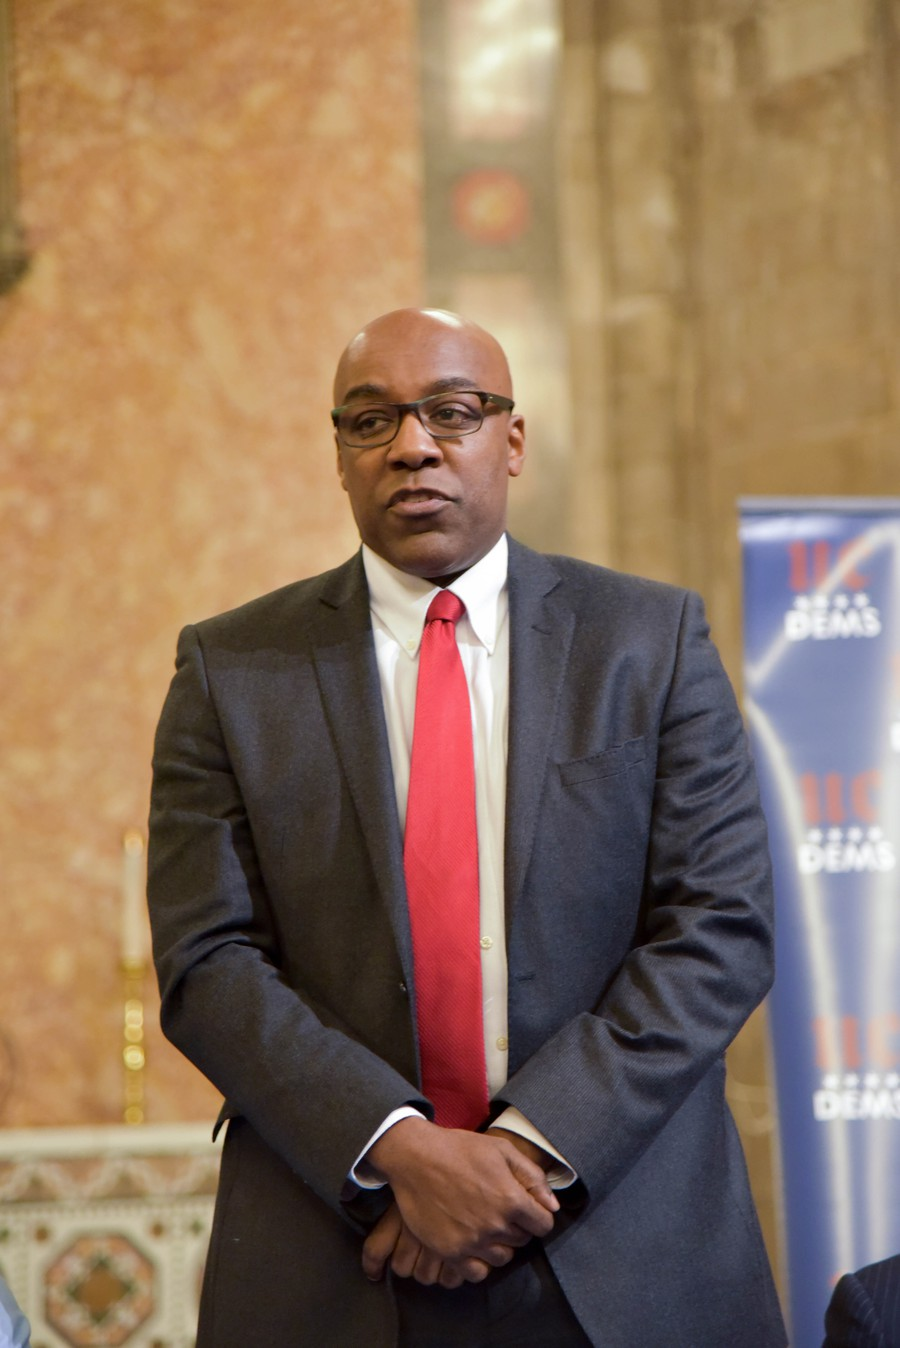 Kwame Raoul represents parts of Hyde Park in the State Senate and is running to be Illinois's Attorney General.